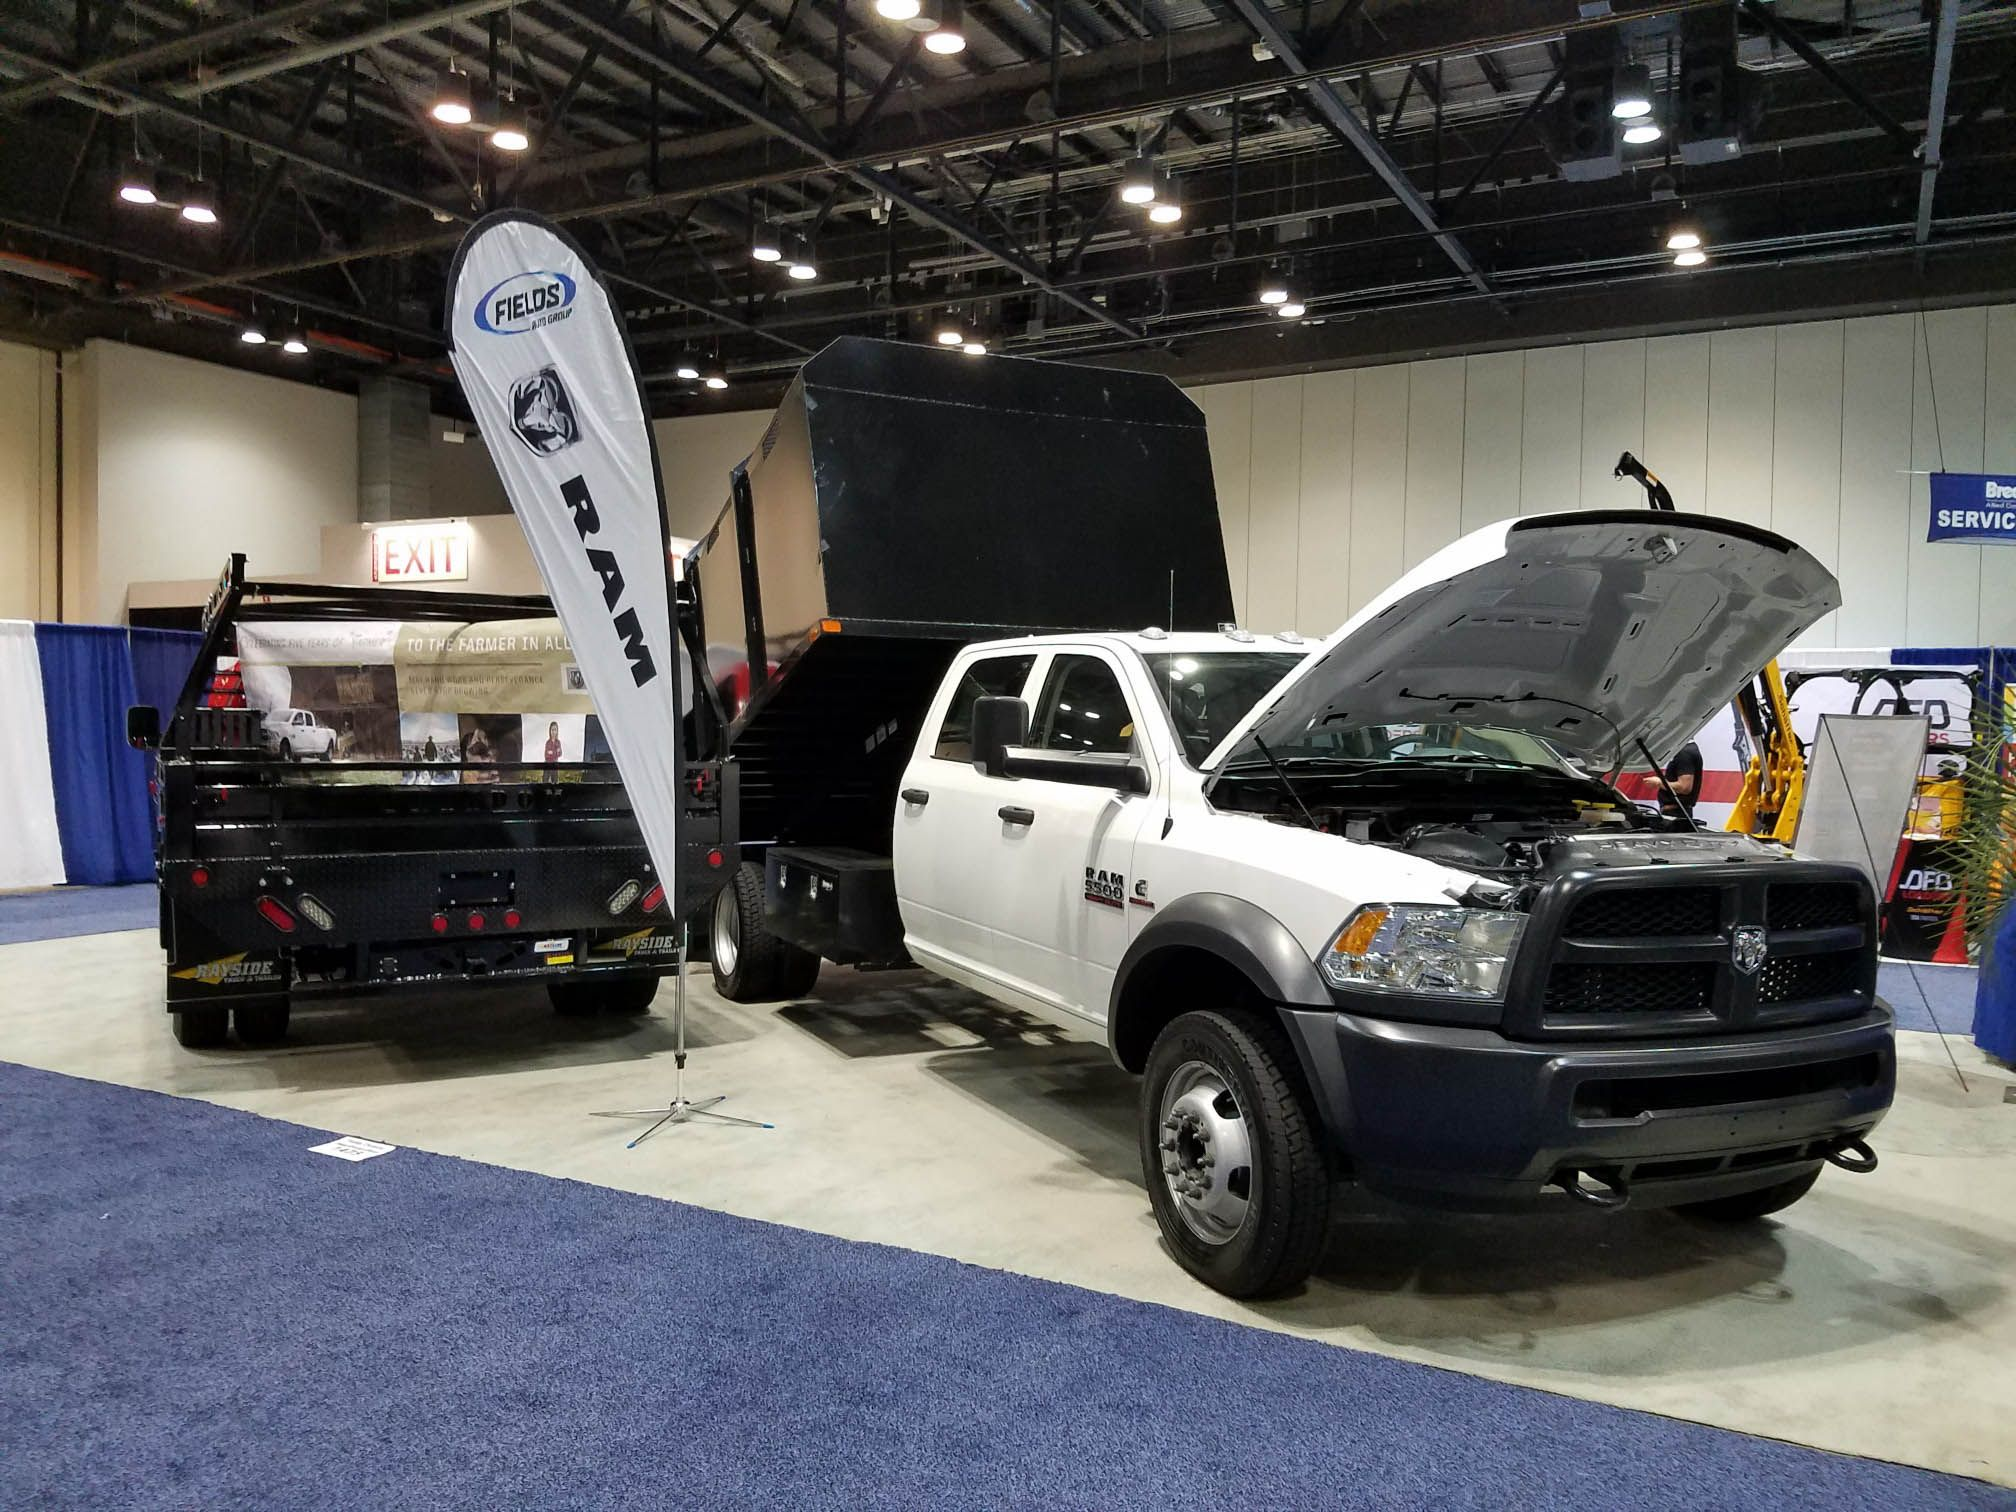 Fields Chrysler Jeep Dodge Ram S Commercial Truck Department Was Recently Featured In The Florida Nursery Growers And Chrysler Jeep Used Luxury Cars Jeep Dodge